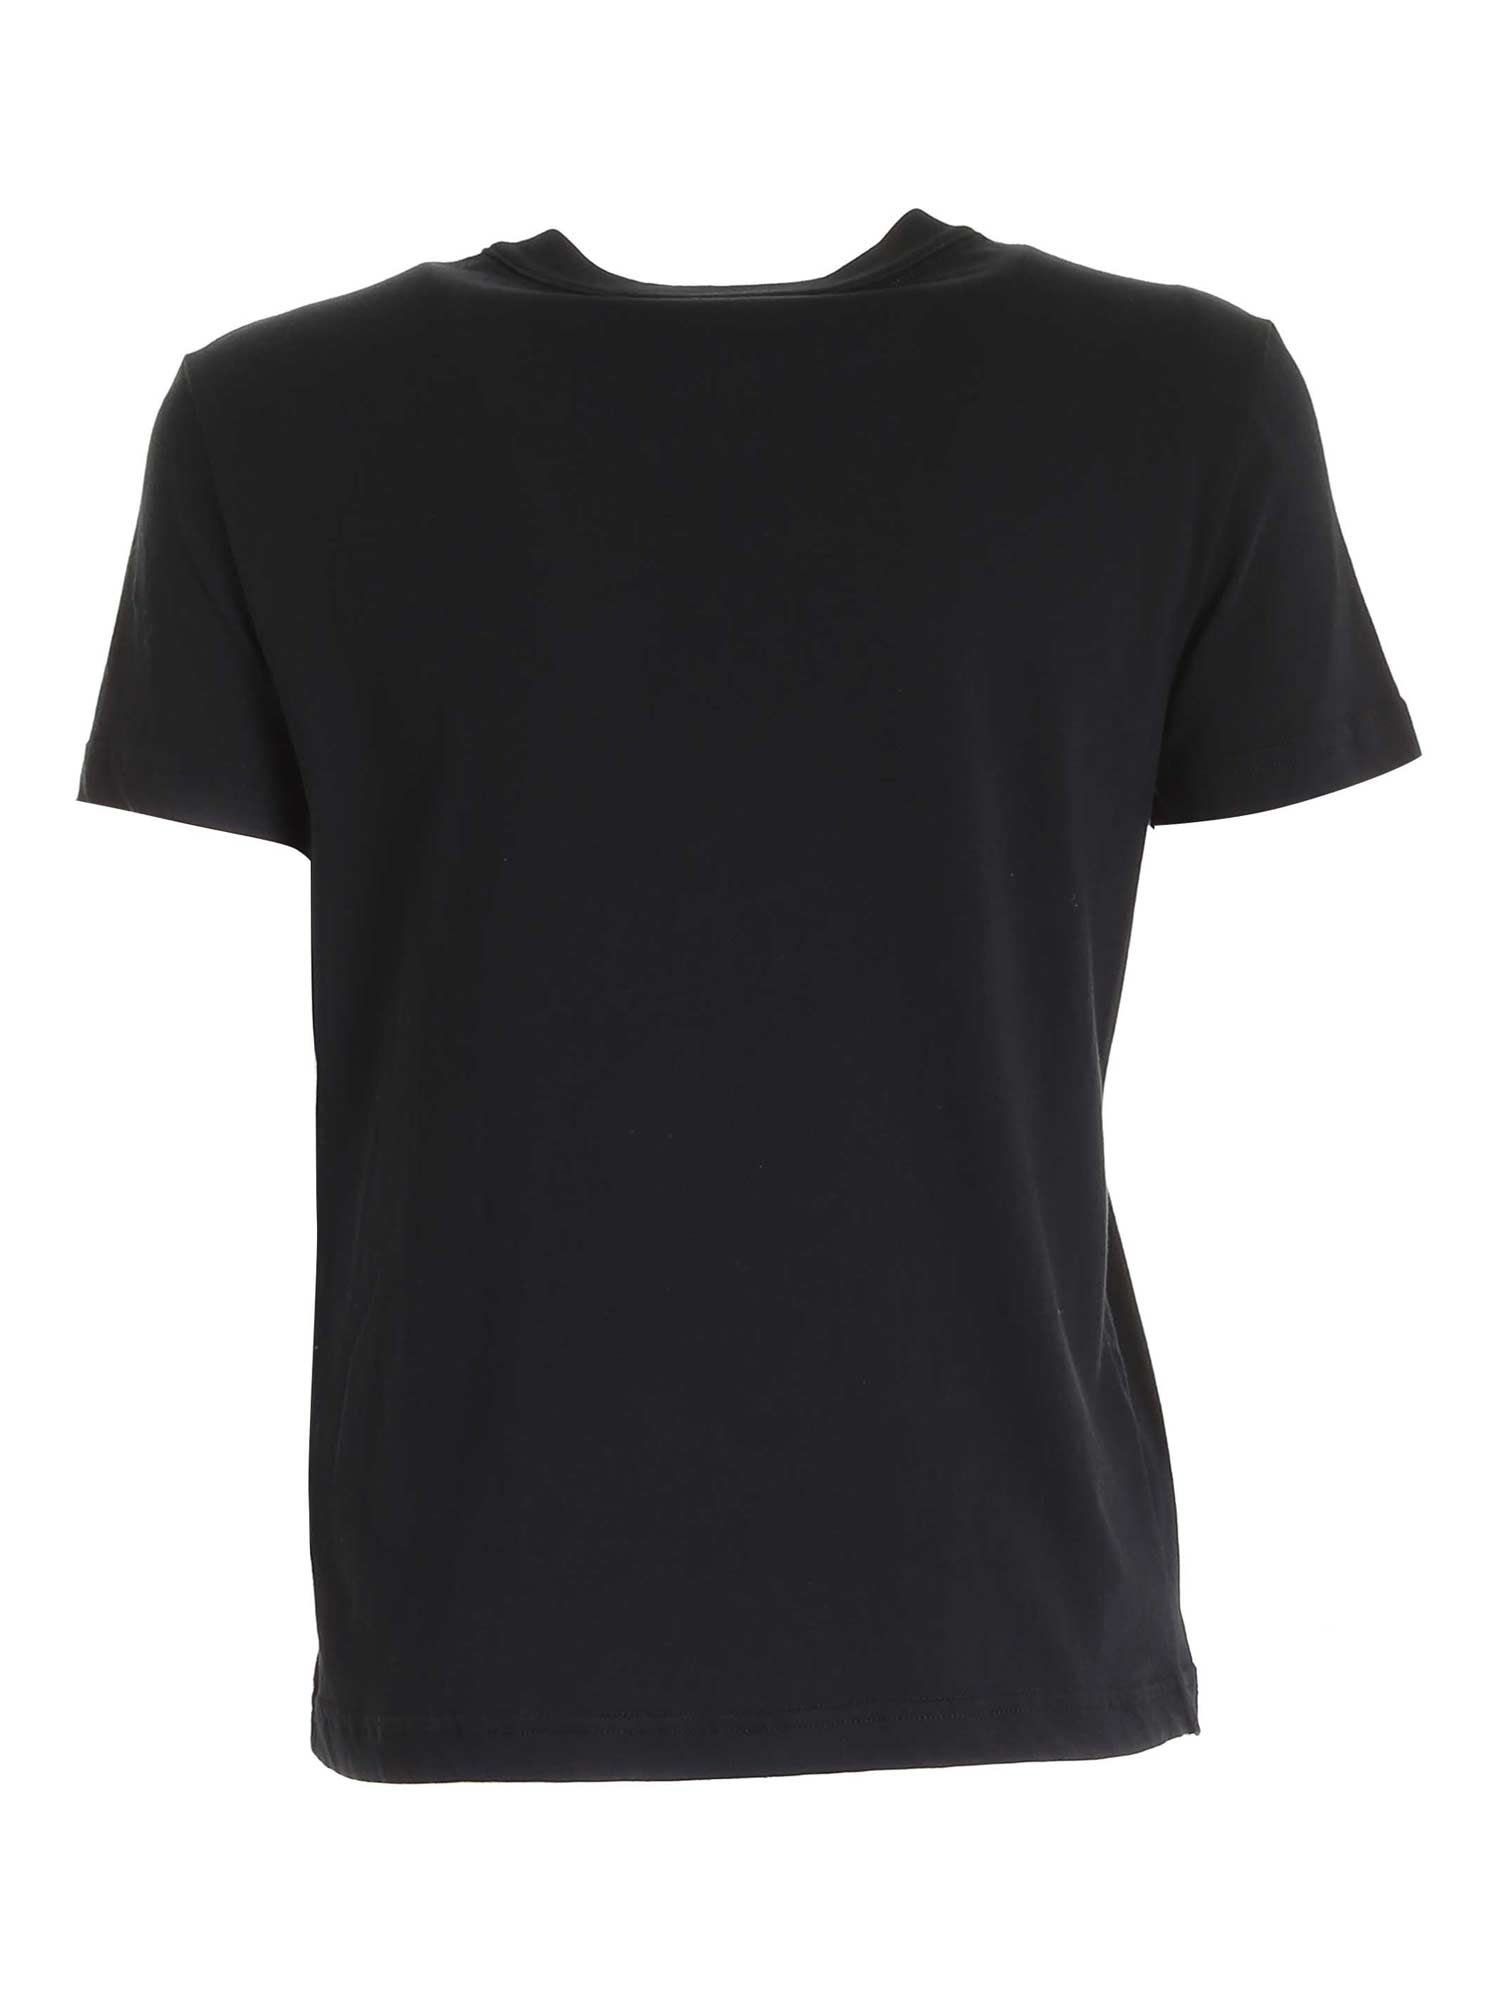 VERSACE JEANS COUTURE Cottons RHINESTONES T-SHIRT IN BLACK